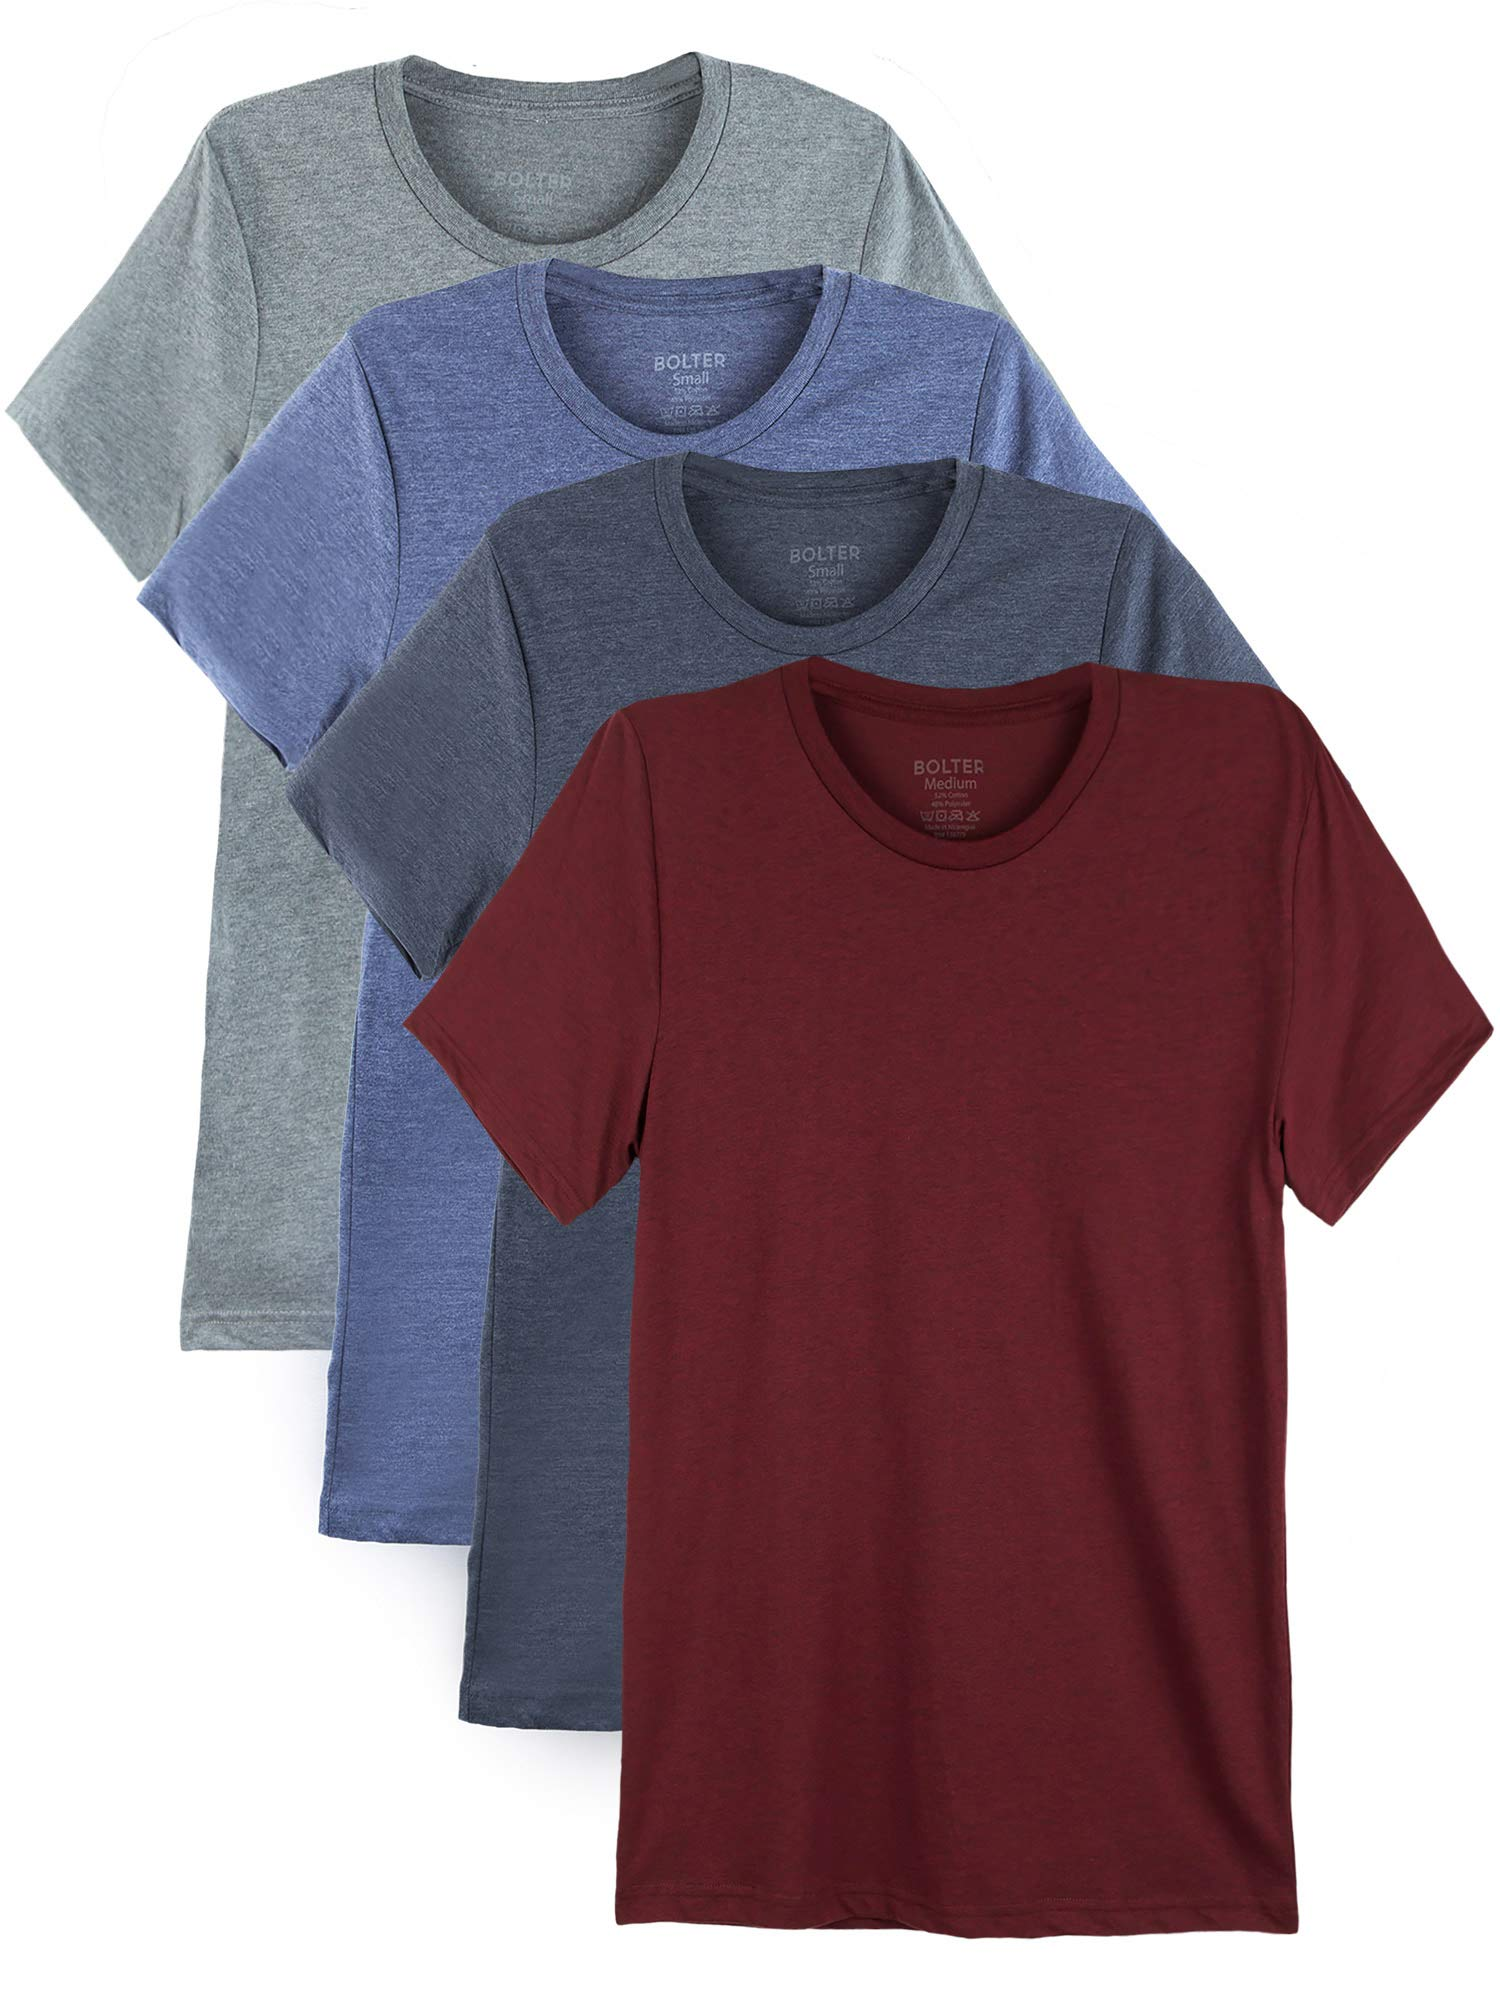 Bolter 4 Pack Men's Everyday Cotton Blend Short Sleeve T-Shirt (XXXX-Large, H.Car/H.Roy/H.NVY/H.Slt) by Bolter